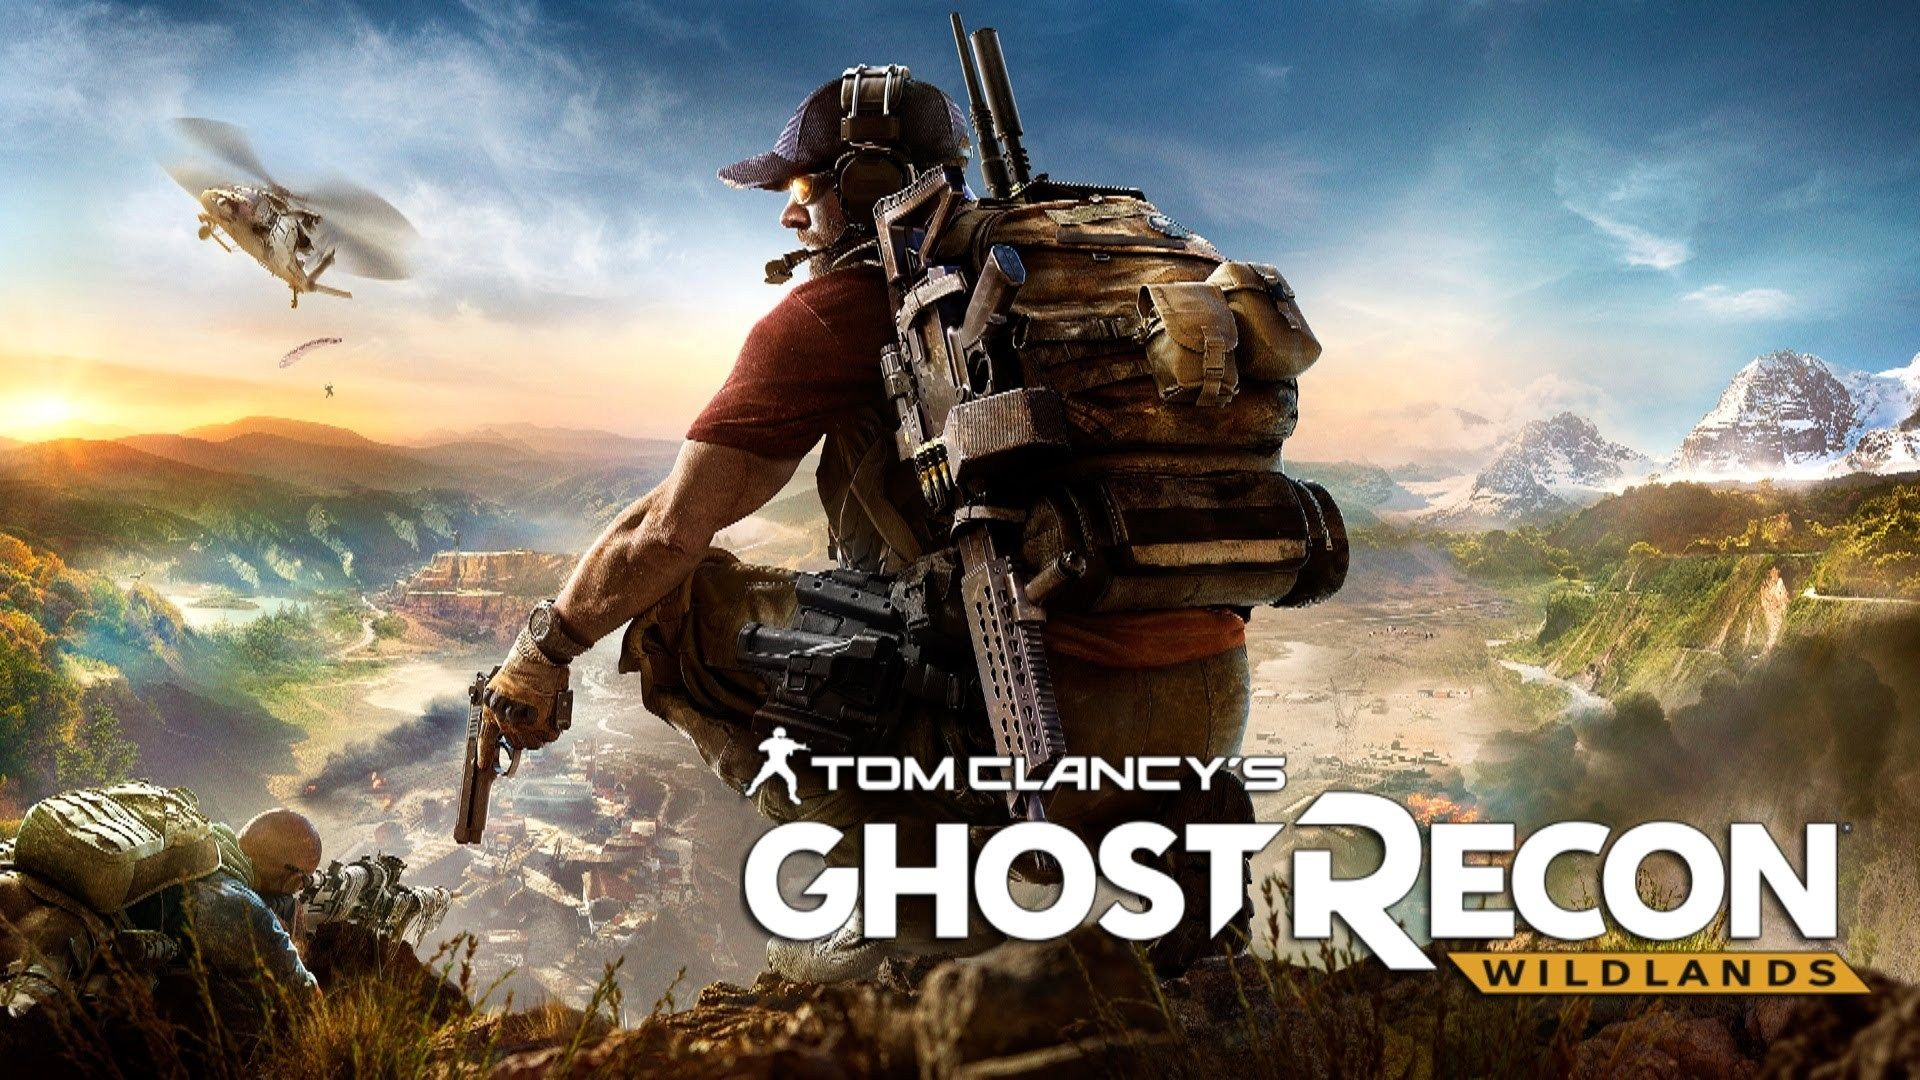 Image result for ghost recon pc game download free